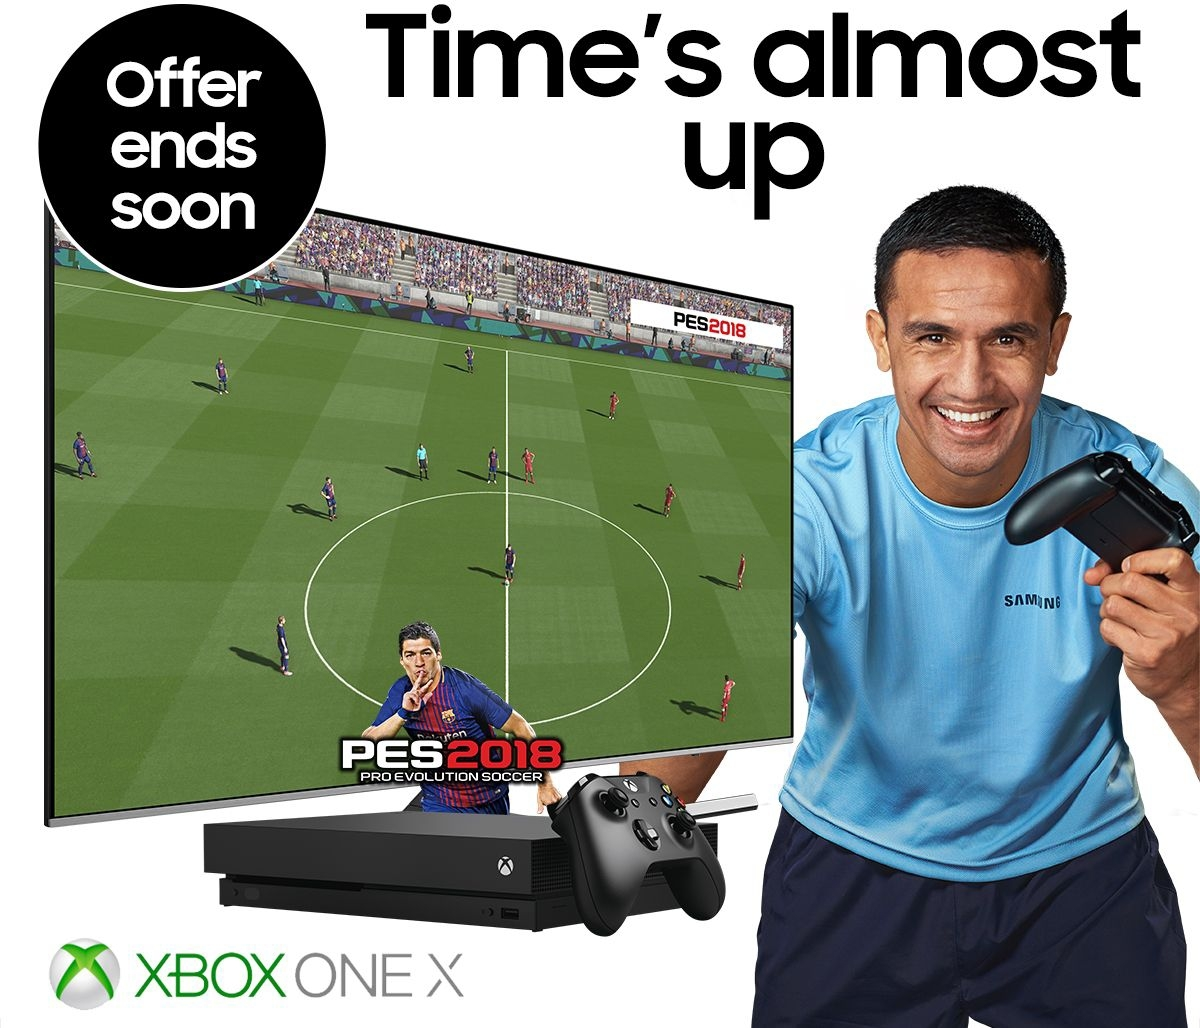 Time's almost up | Offer ends soon